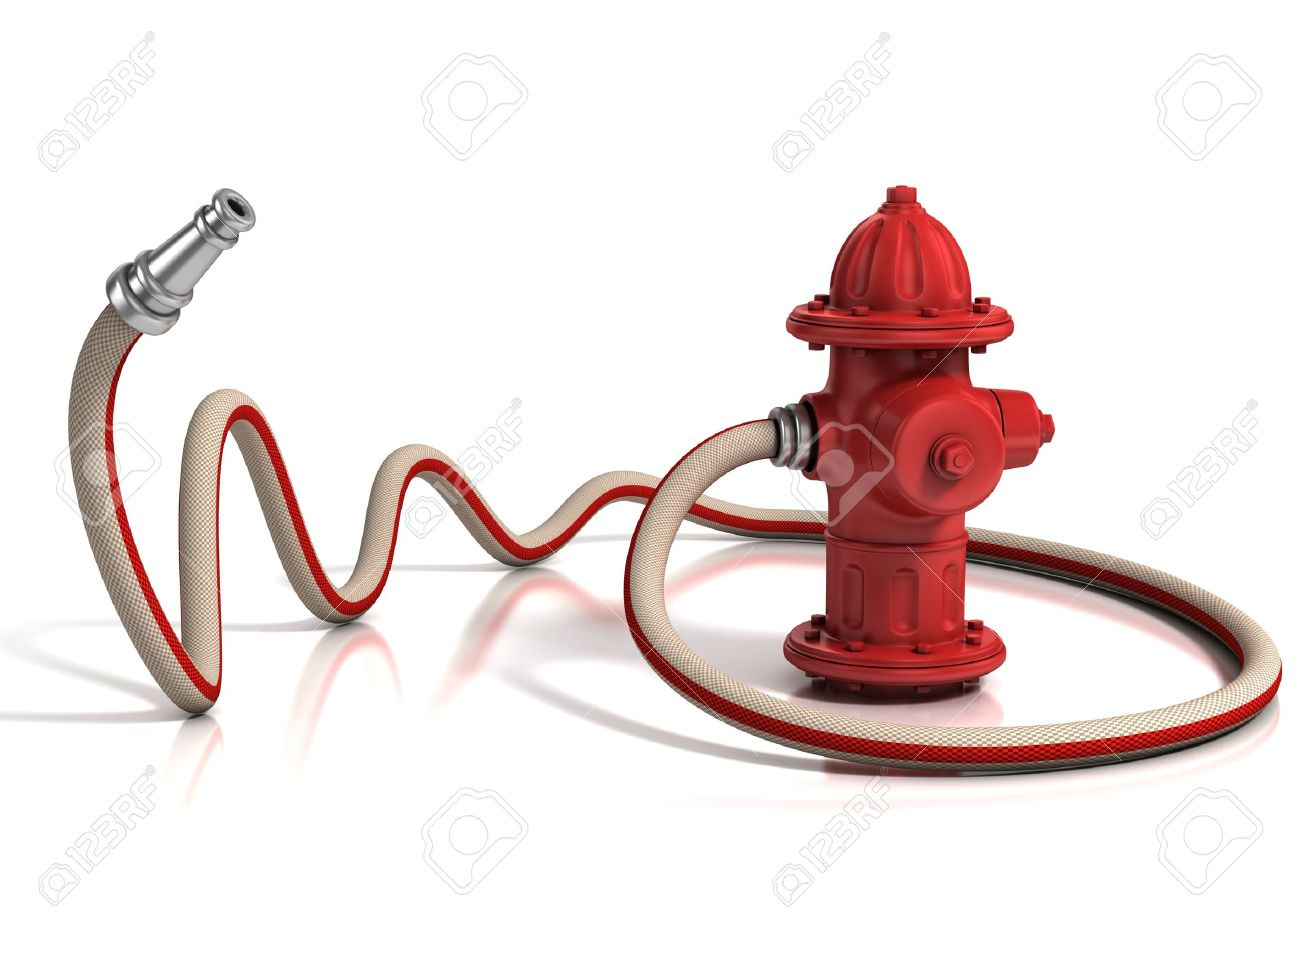 fire hydrant with fire hose 3d illustration Stock Illustration - 16592723  sc 1 st  123RF.com & Fire Hydrant With Fire Hose 3d Illustration Stock Photo Picture And ...